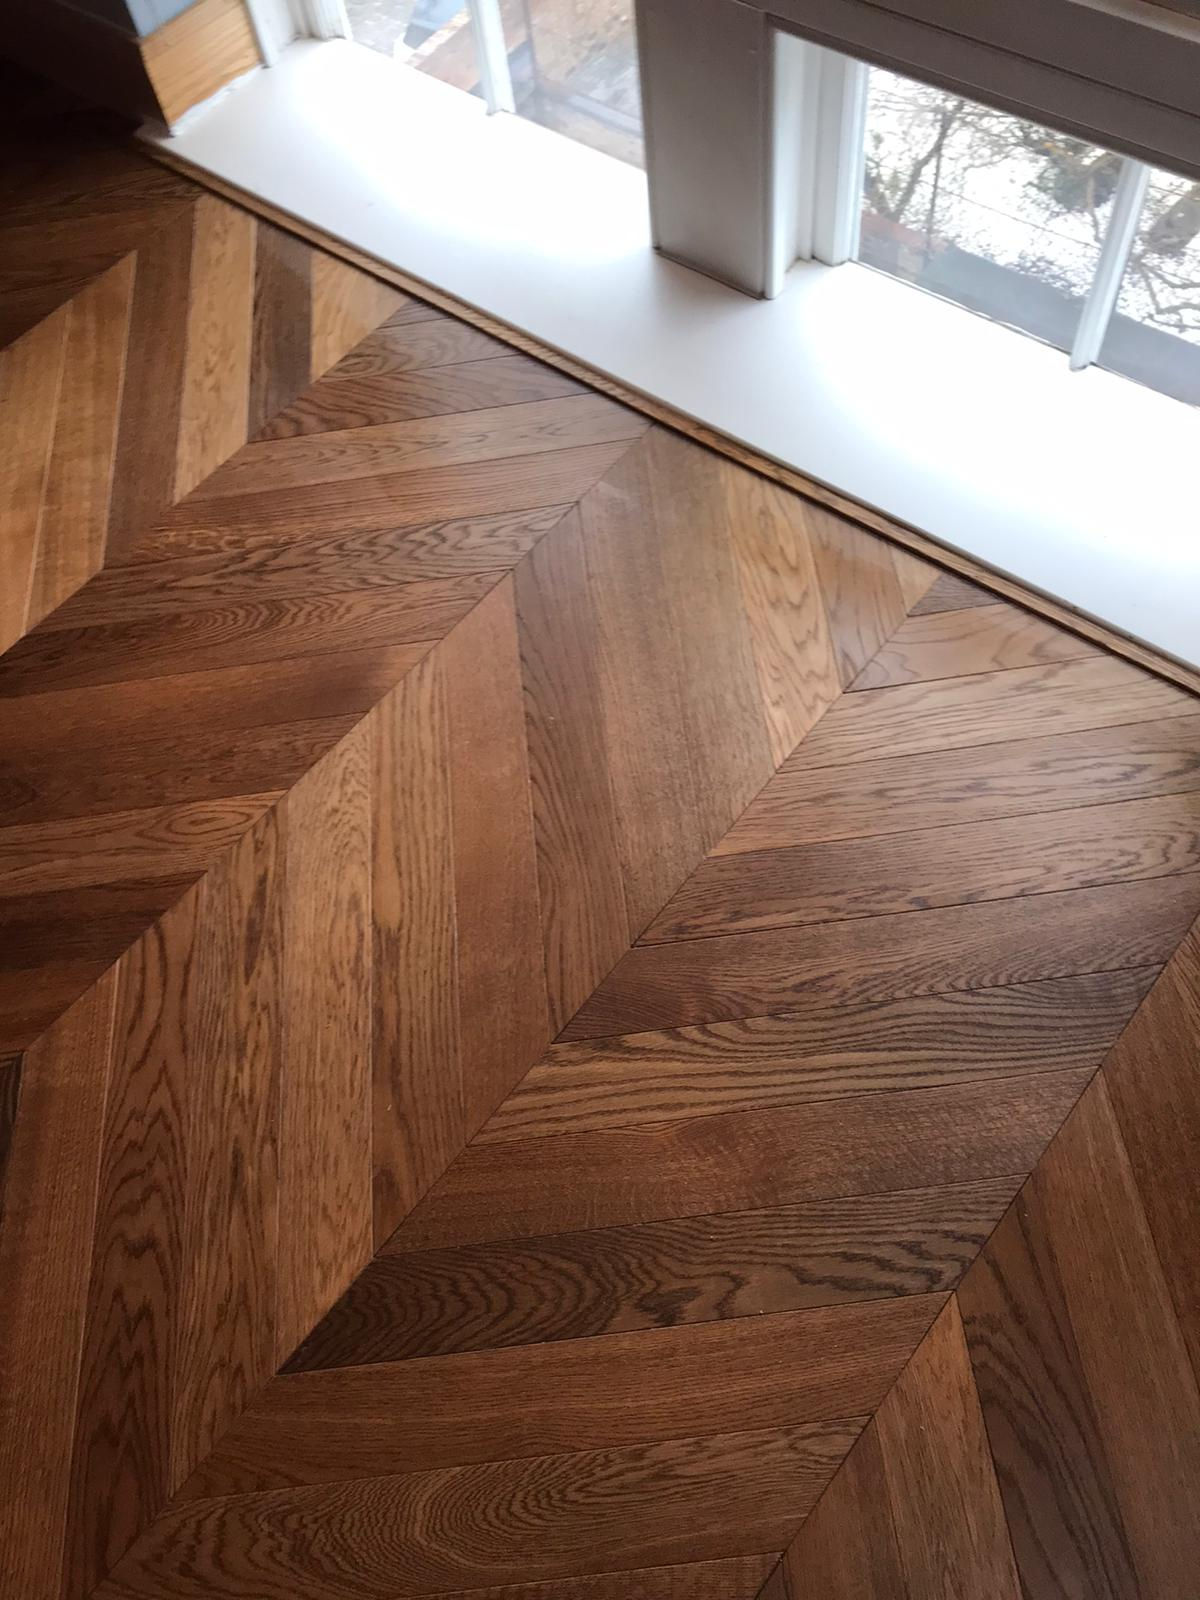 Chevron parquet installation - Havwoods engineered parquet flooring with acoustic underlay